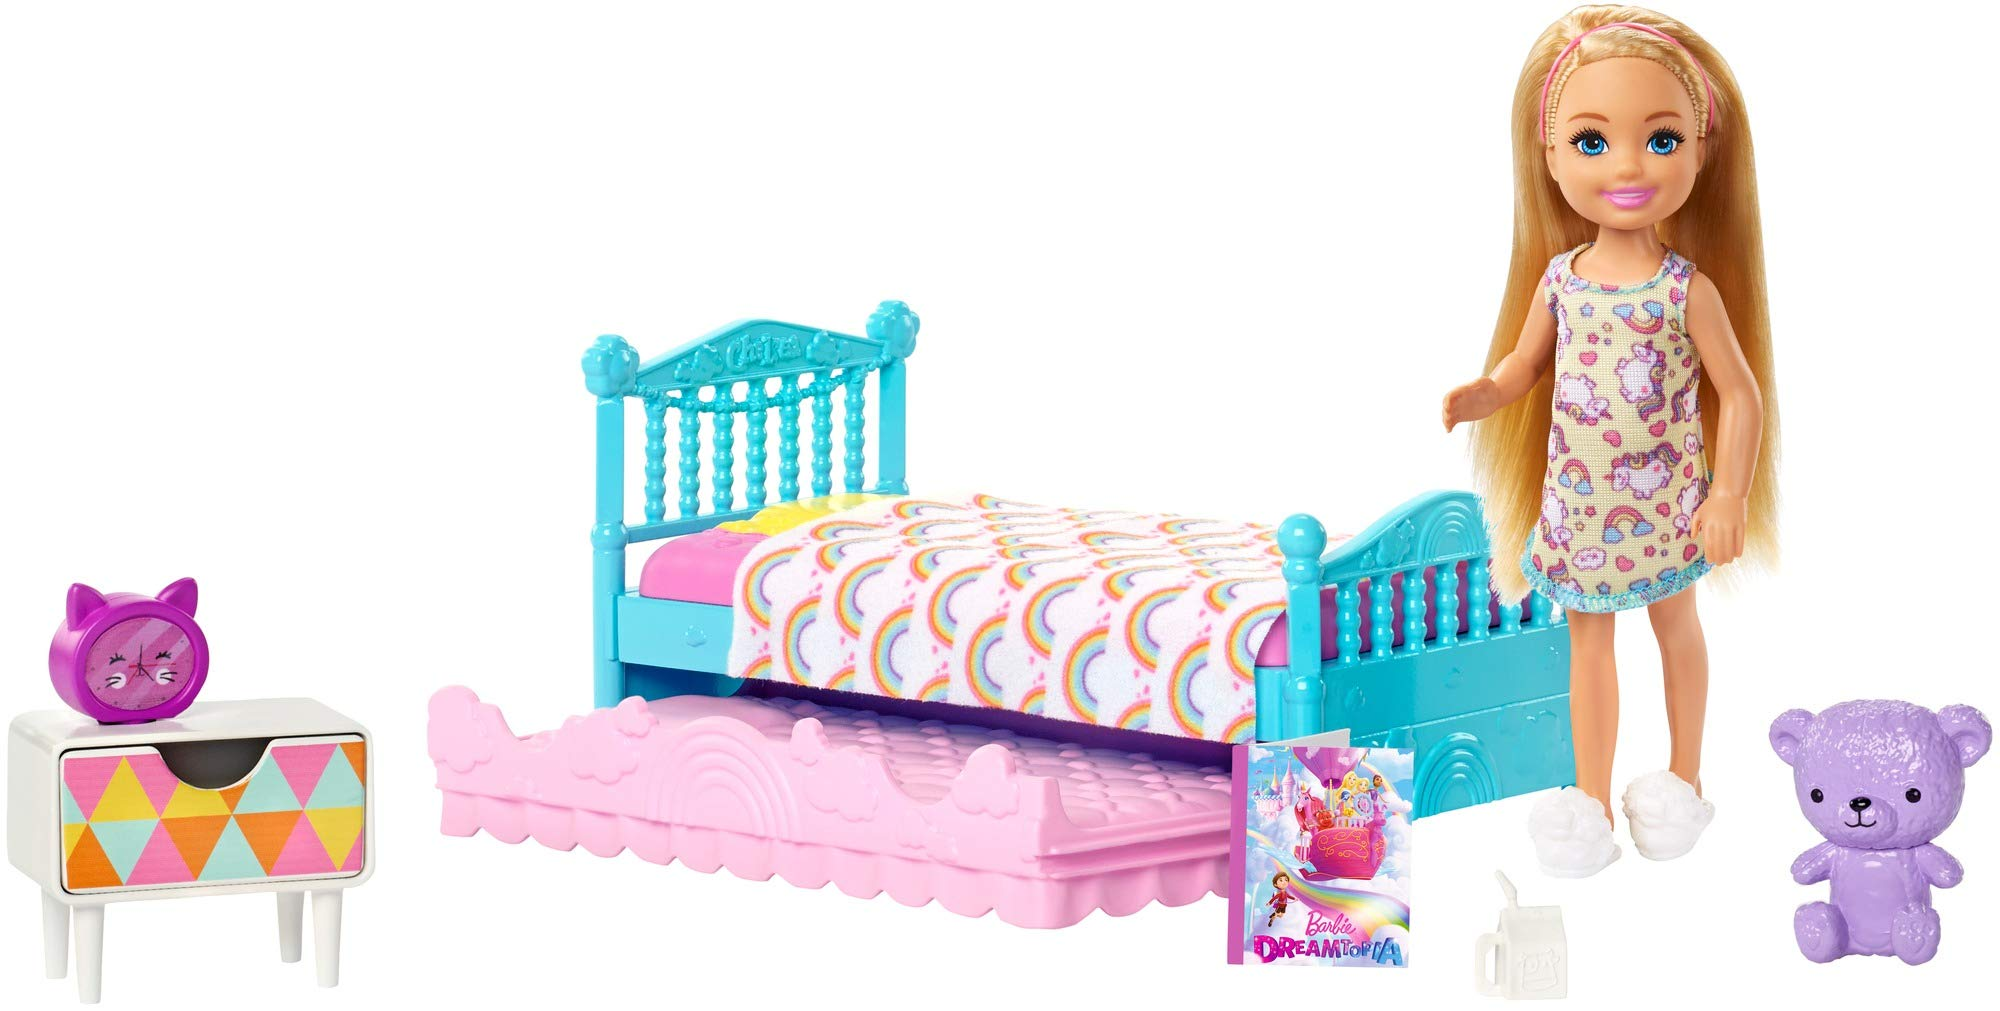 Barbie Club Chelsea Toy, 6-inch Blonde Doll and Bedroom Playset with Working Trundle Bed, Nightstand with Drawer, Teddy Bear and More, Gift for 3 to 7 Year Olds [Amazon Exclusive]